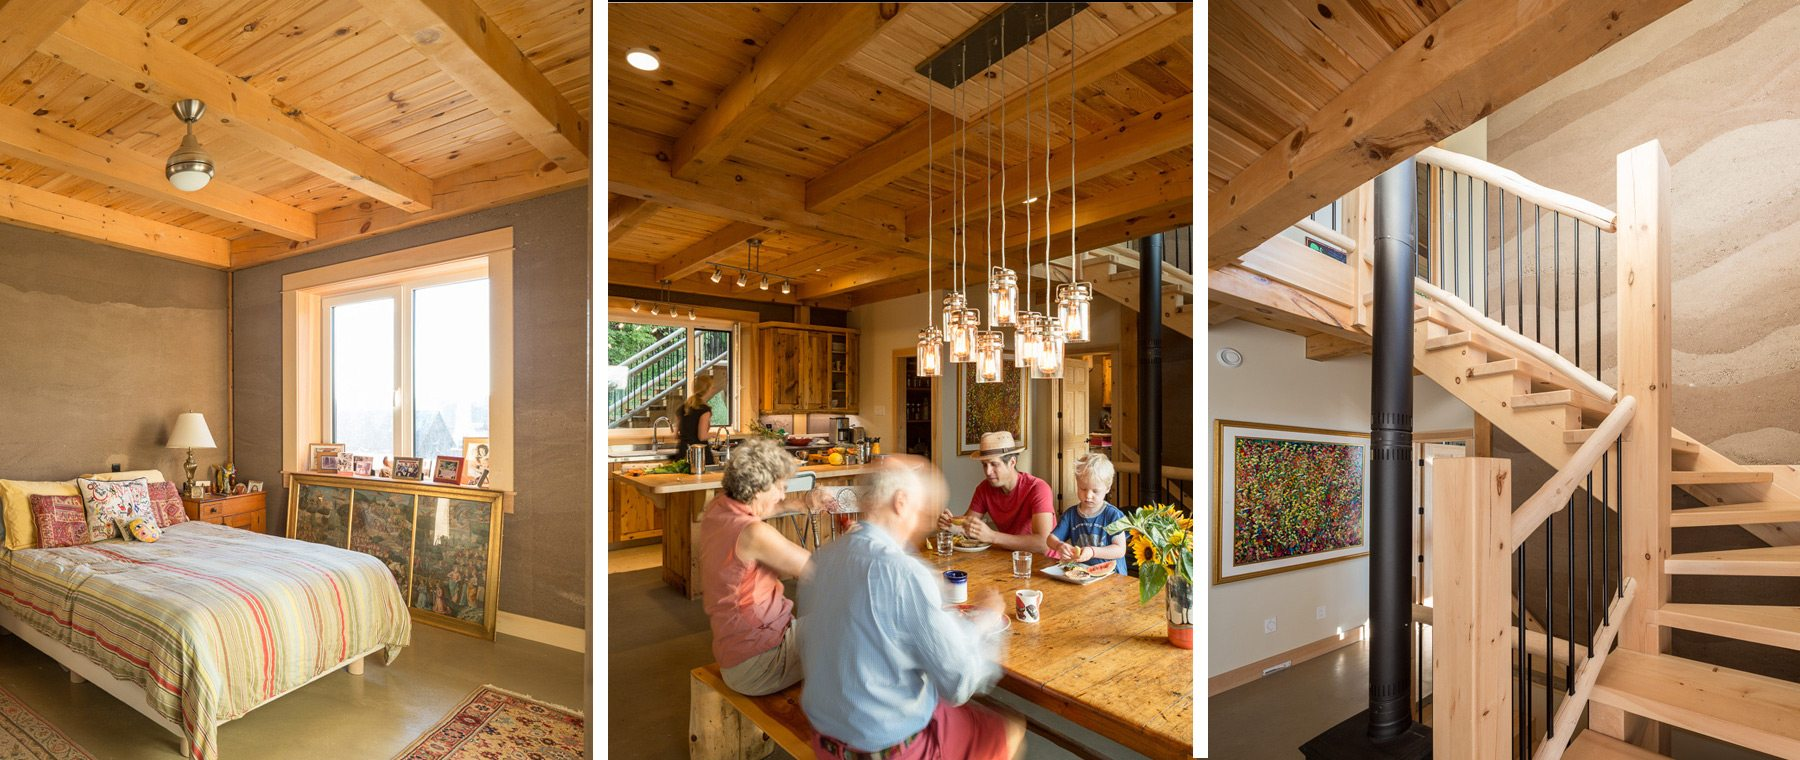 Rethinking the Art of Living Green | Rammed-earth dwelling home to three generations